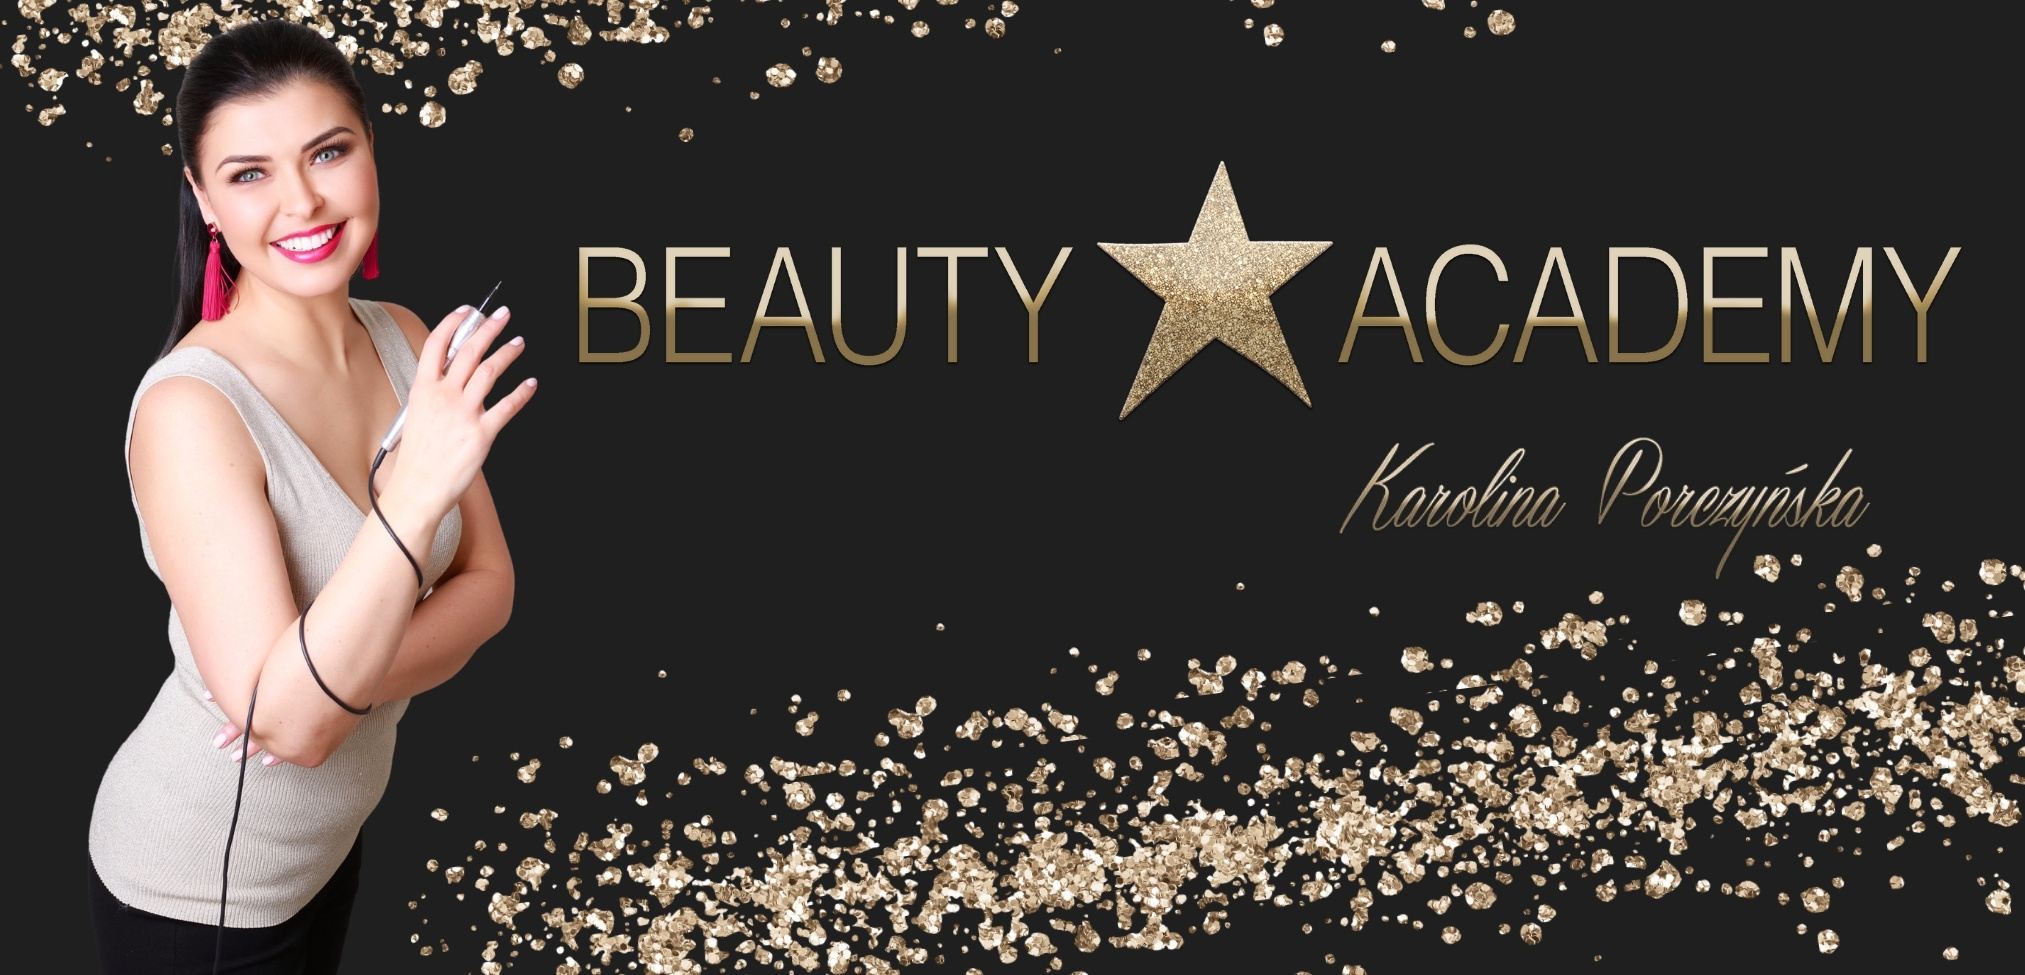 beautystaracademy offers beauty courses including microblading and powder brows